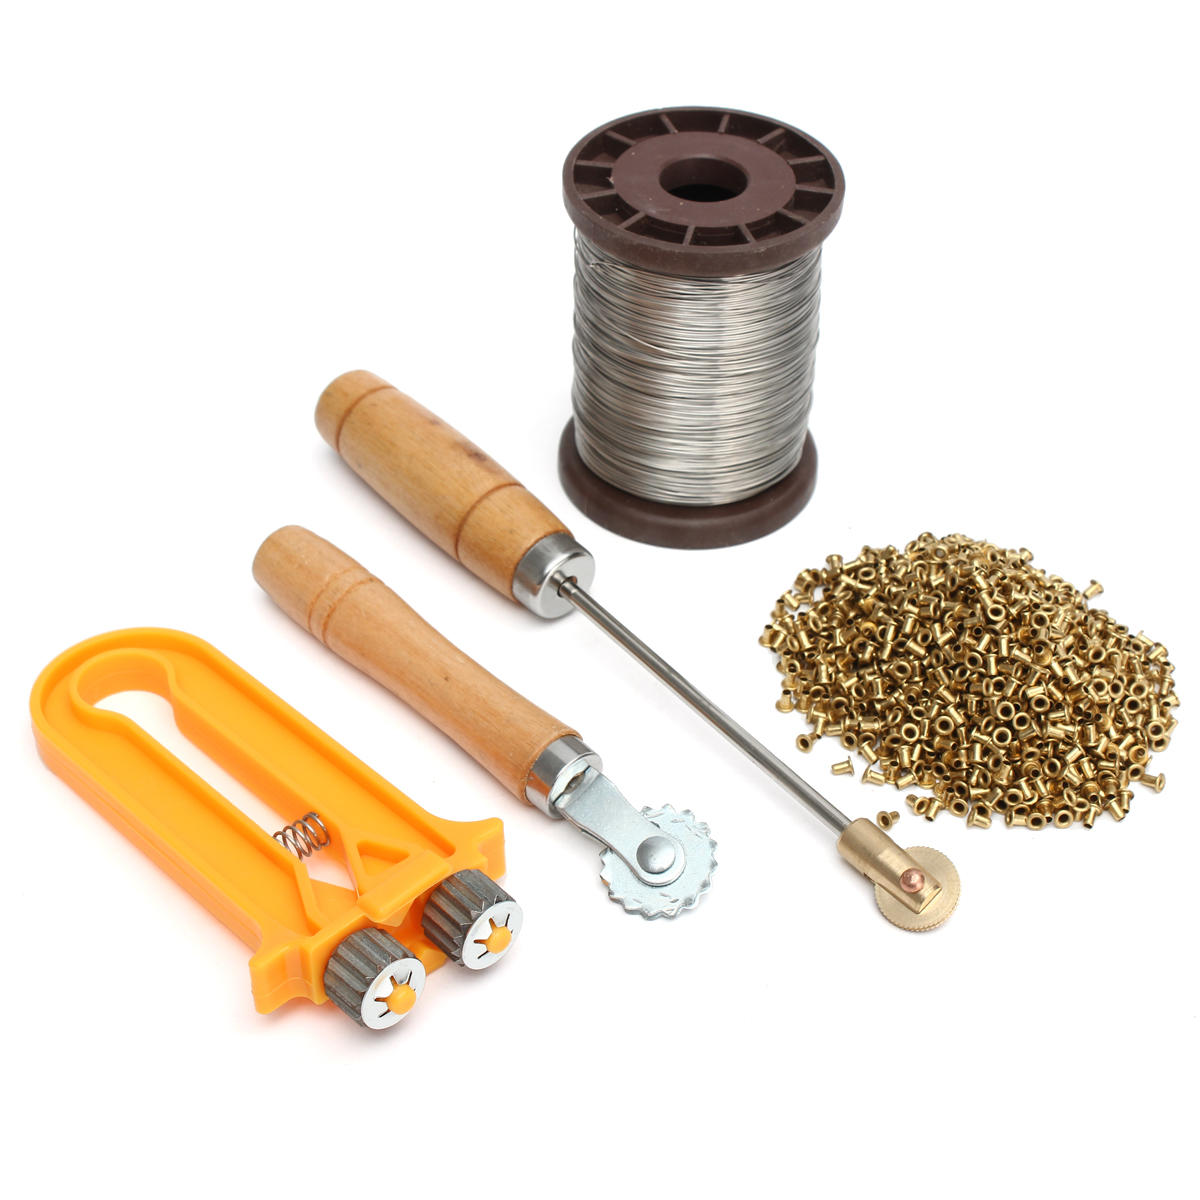 Wiring Pack Eyelets Wire Bee Frame Wire Tensioner Wire Embedder Beekeeping on pneumatic tools, networking tools, cutting tools, programming tools, foundation tools, precision tools, hand tools, operation tools, framing tools, power tools, insulation tools, torque tools, three tools,